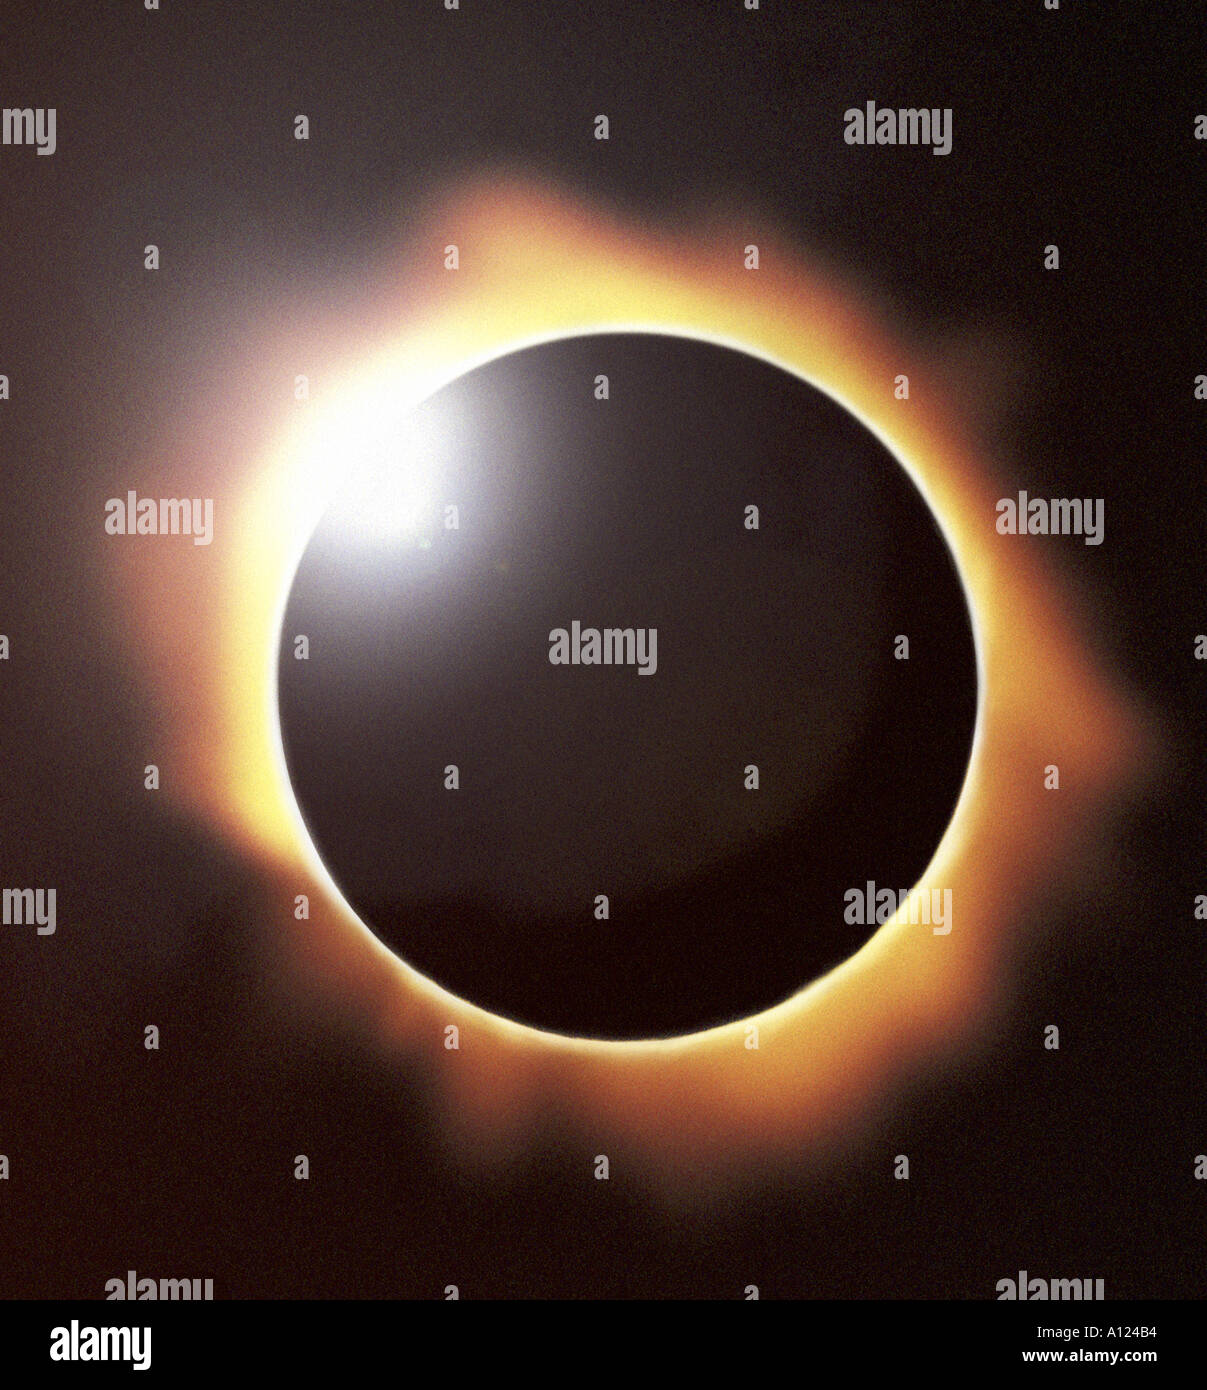 Total eclipse of the sun showing diamond ring effect - Stock Image